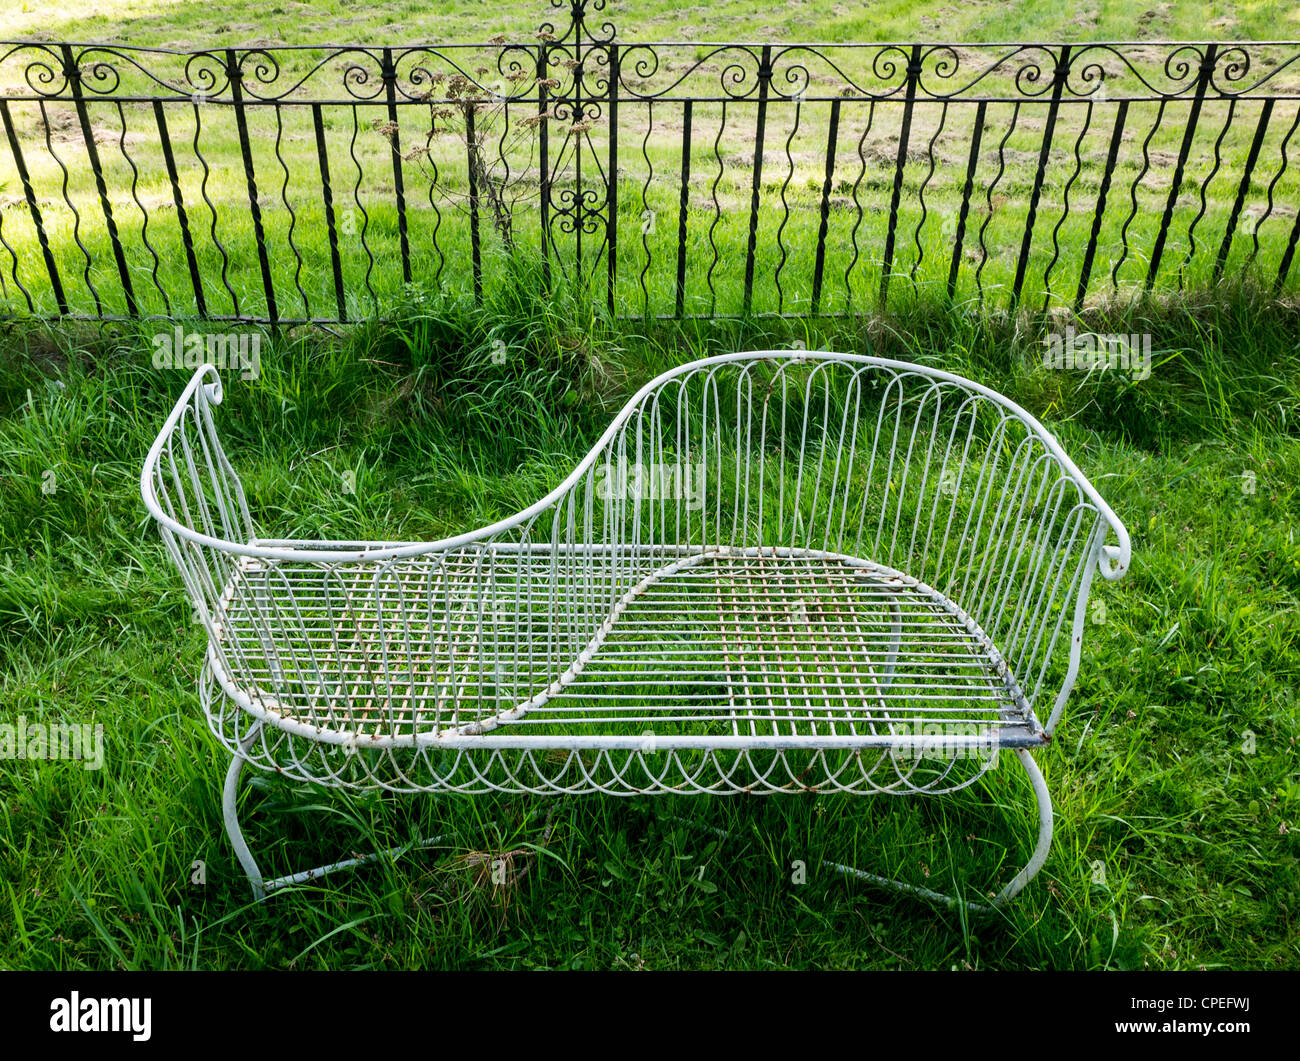 Images Of Painted Garden Furniture